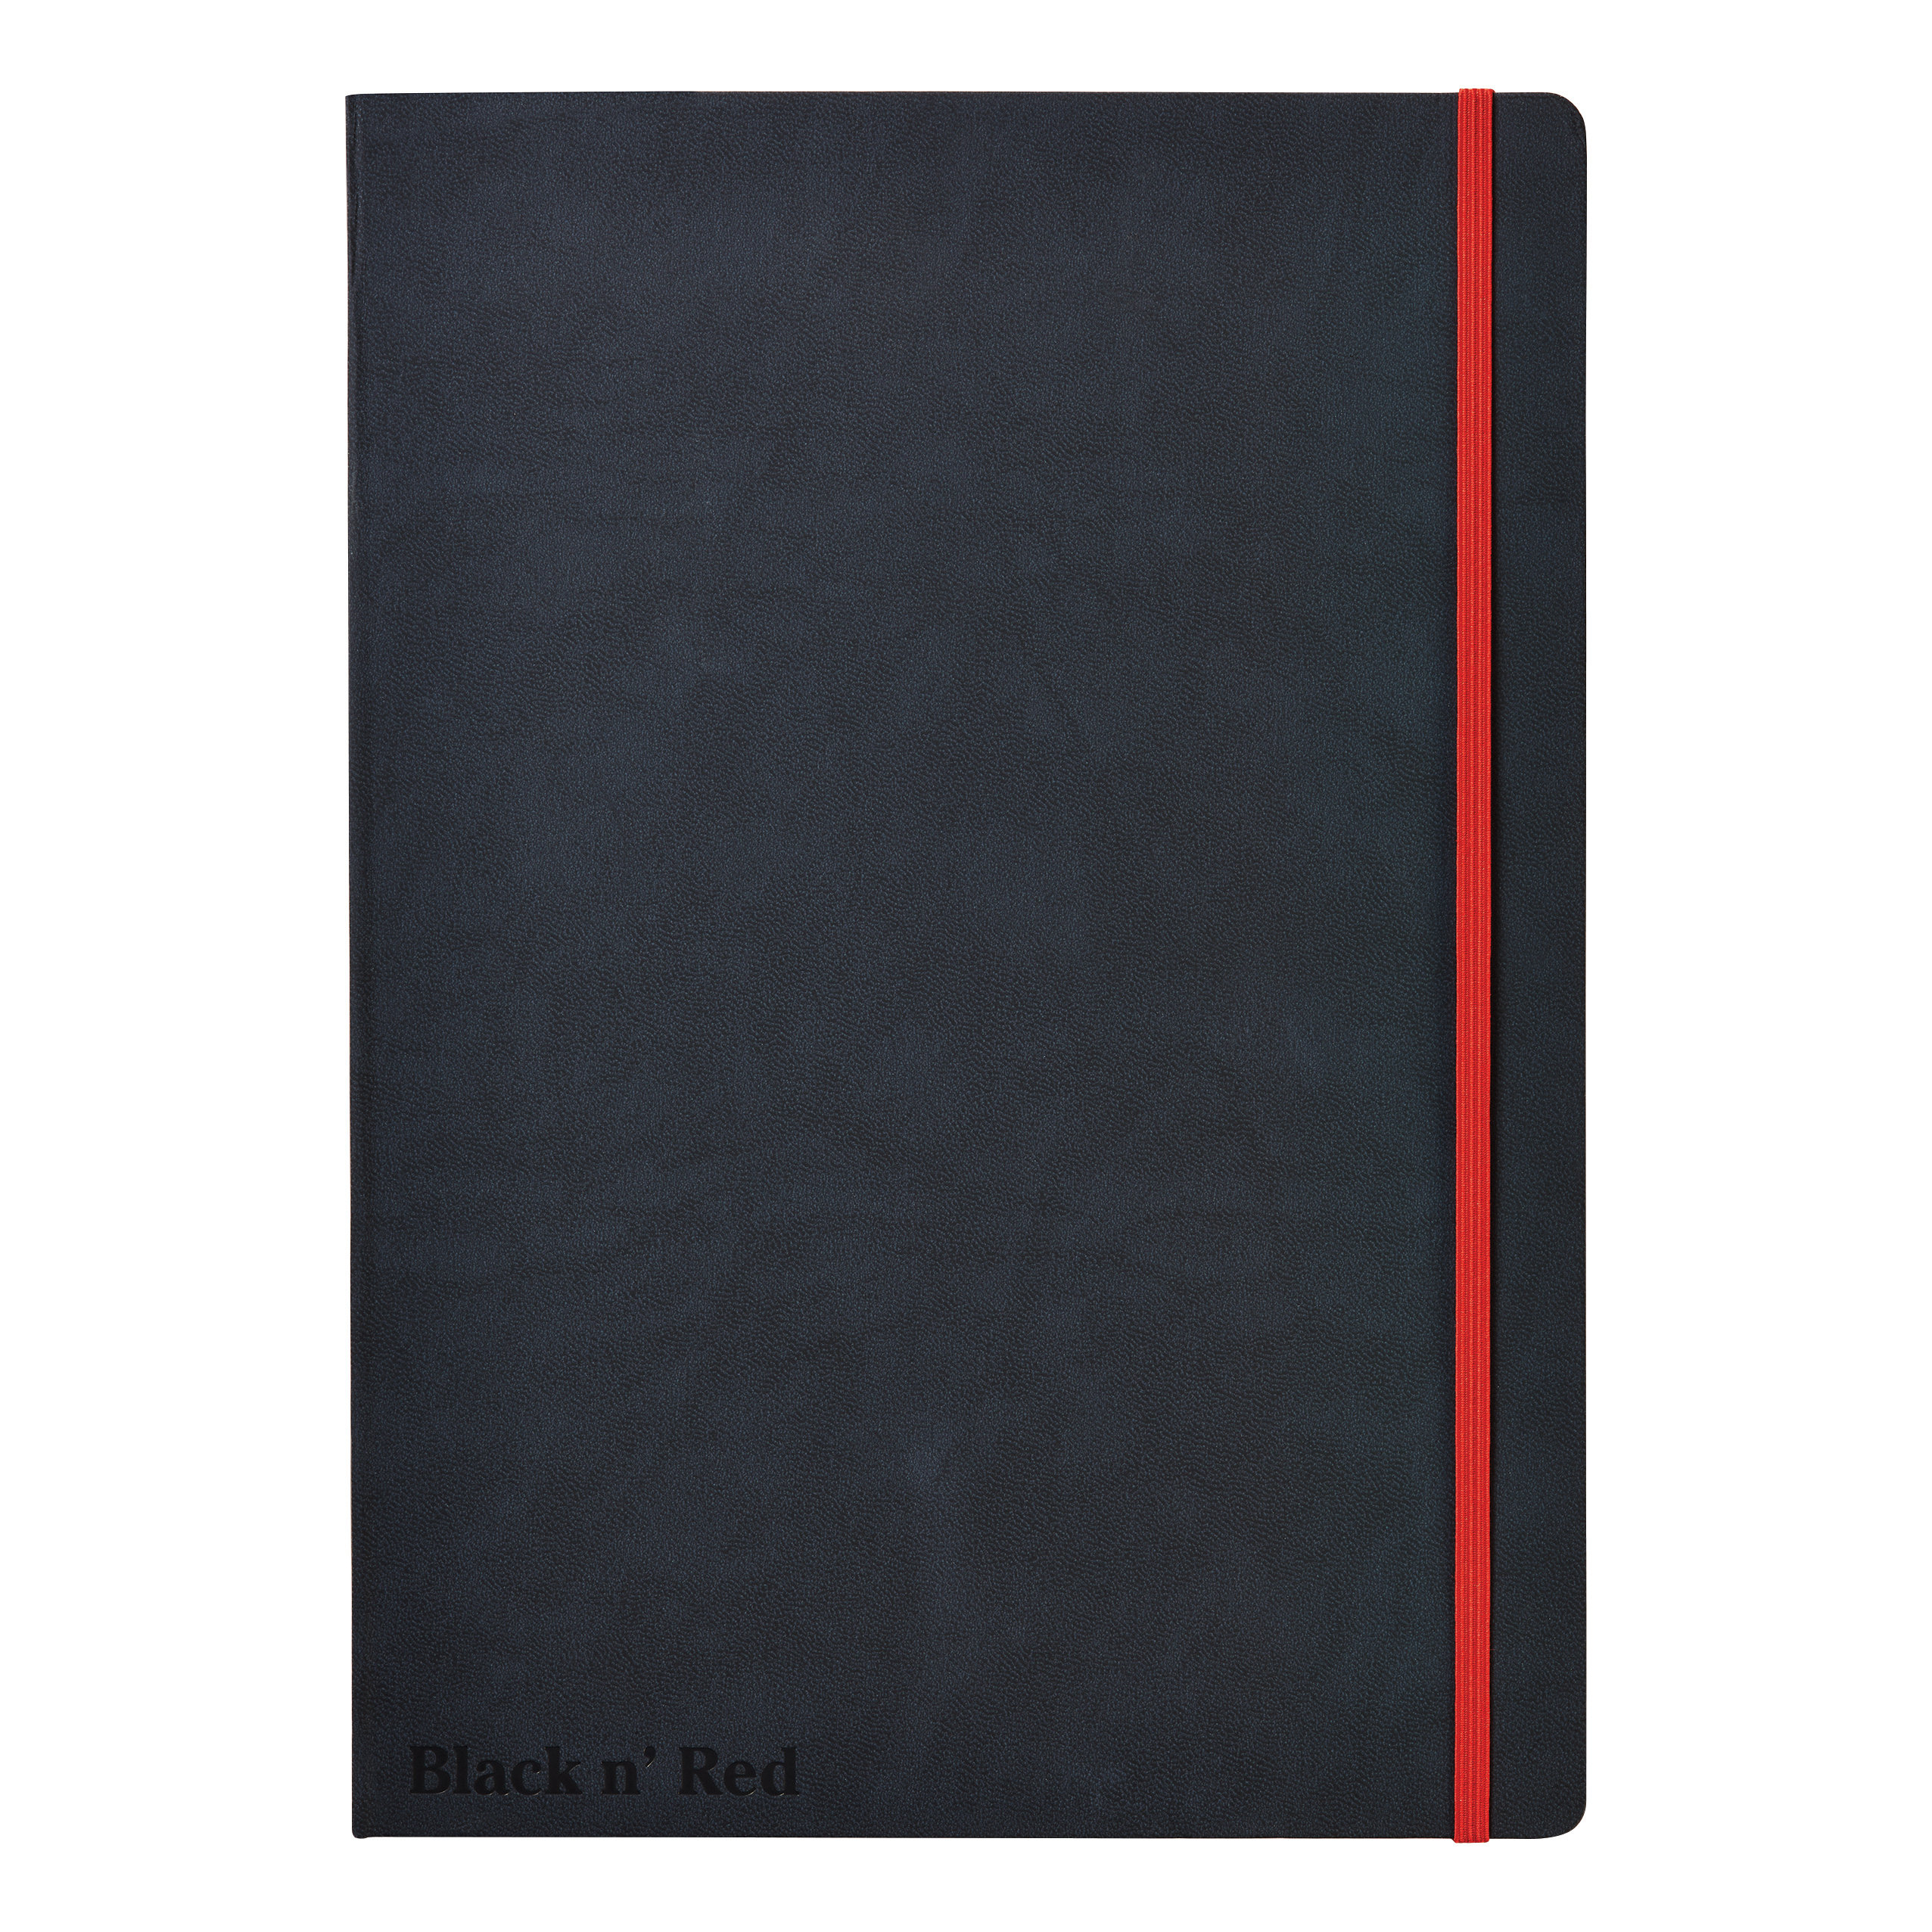 Black By Black n Red Business Journal Hard Cover Ruled and Numbered 144pp A4 Ref 400038675